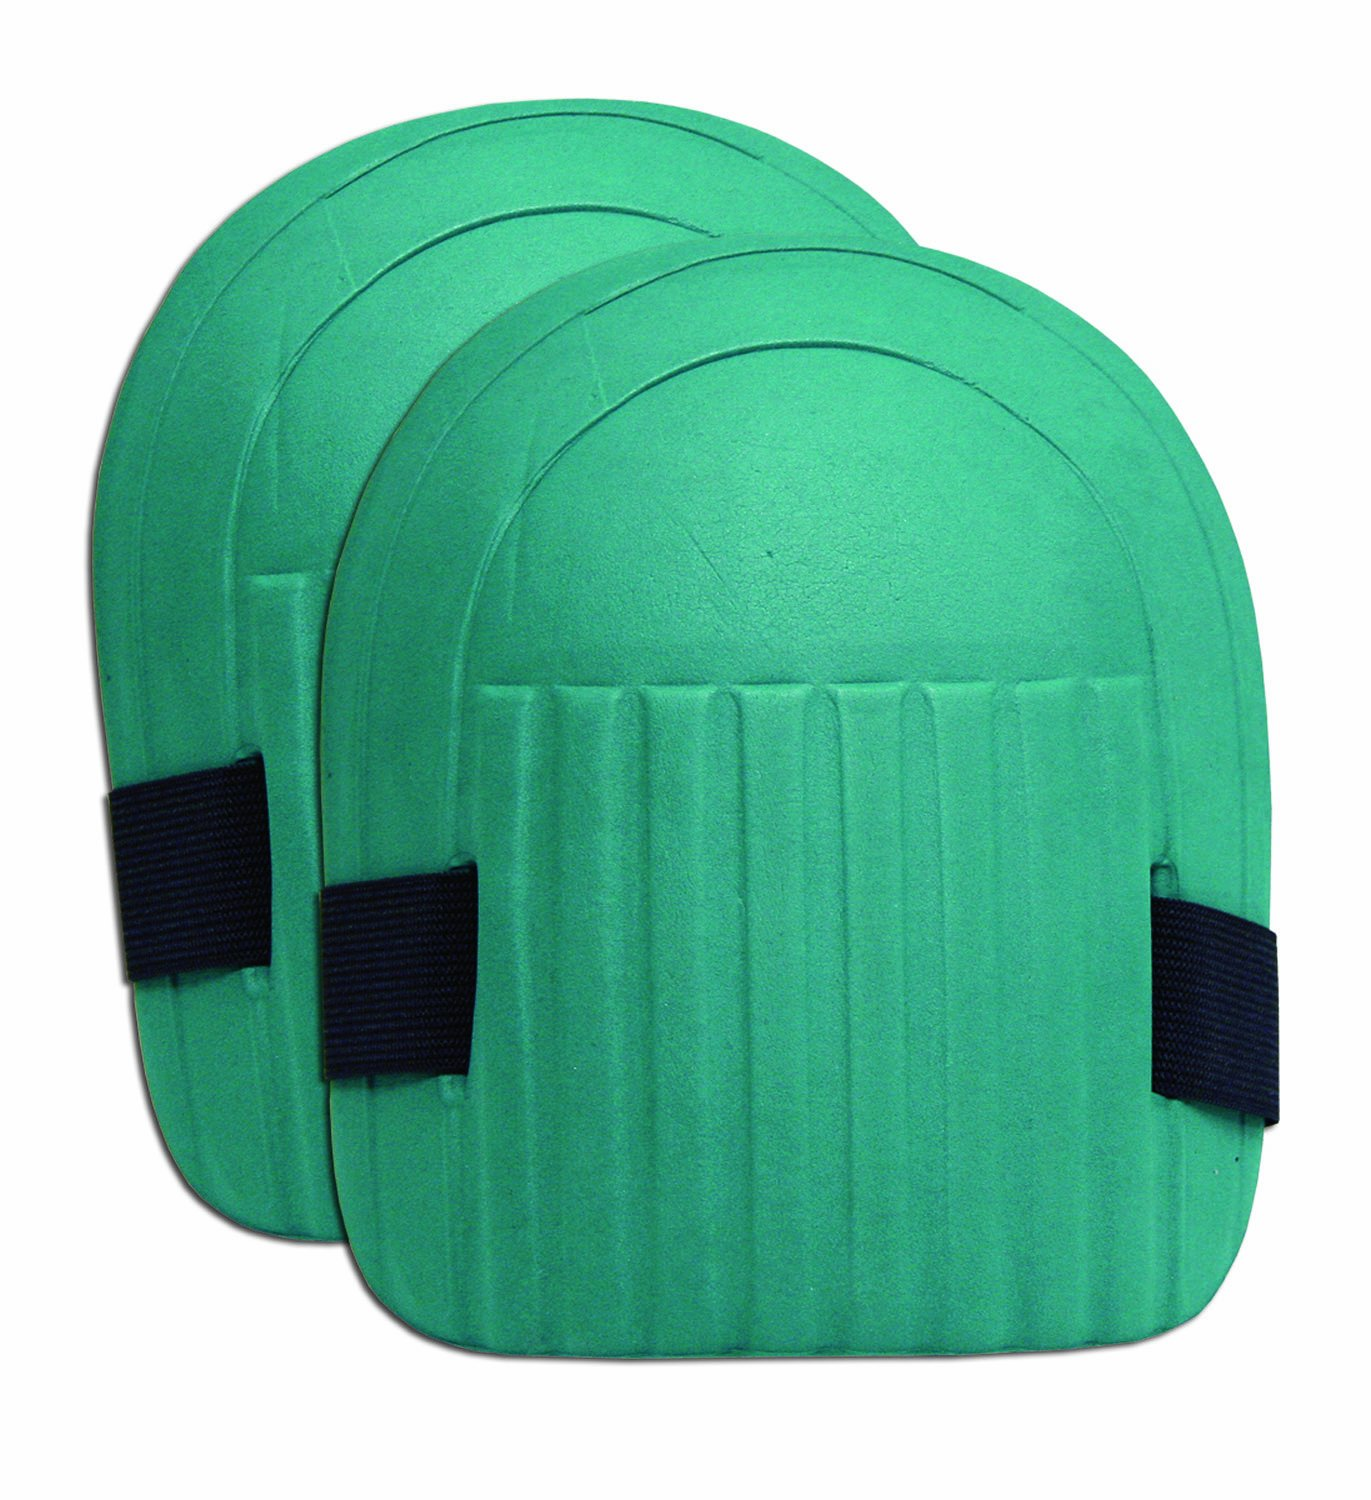 Task Tools T77137 Mini High-Density Foam Kneepads with Liner